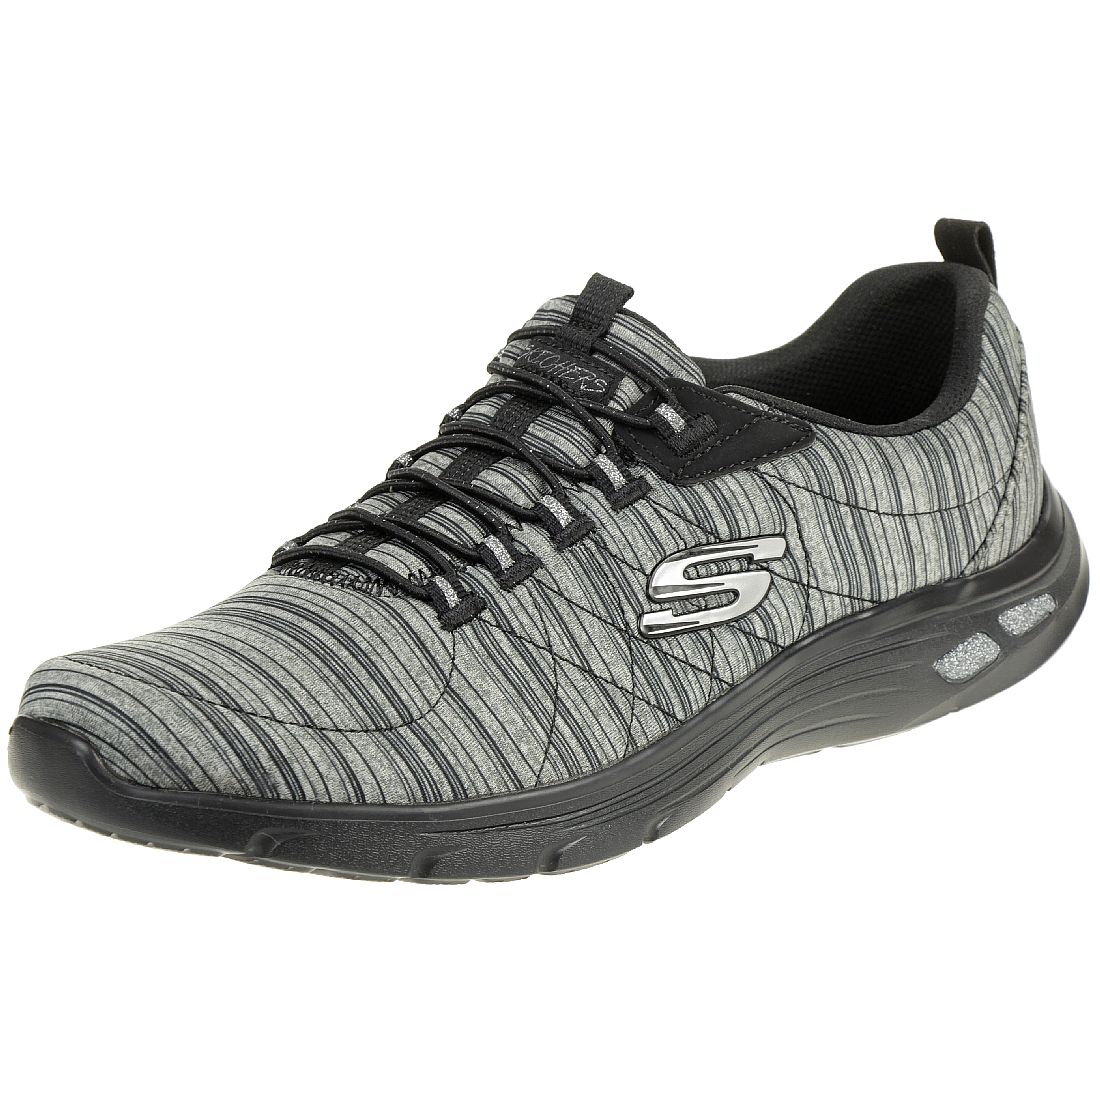 Skechers Damen Empire D'lux Sneaker